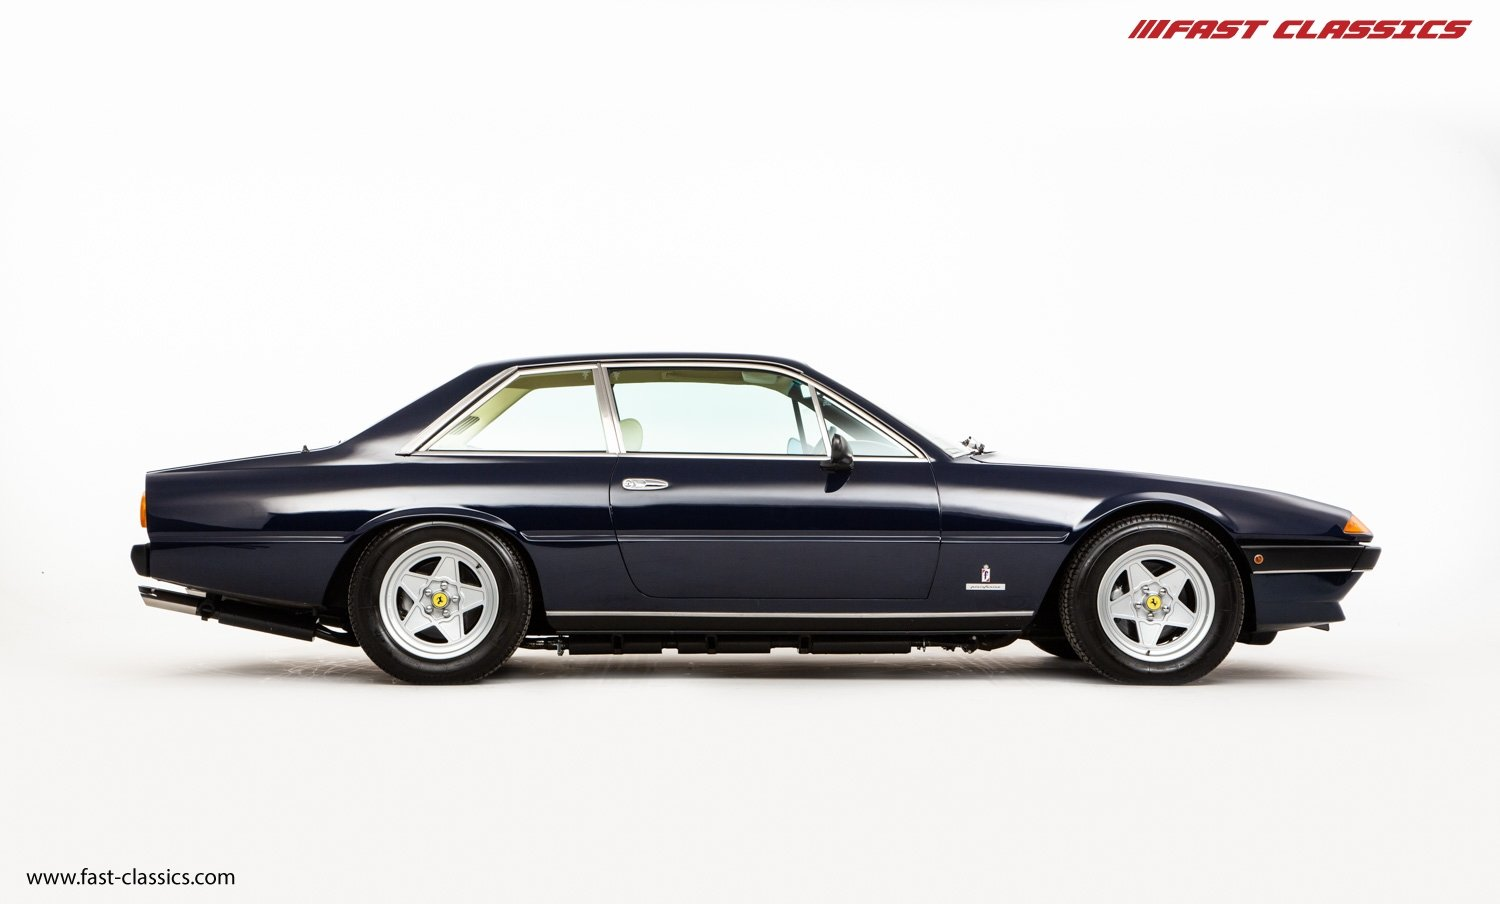 1980 FERRARI 400I // BLU POZZI // UK RHD // 1 OF 180 UK SUPPLIED For Sale (picture 1 of 21)